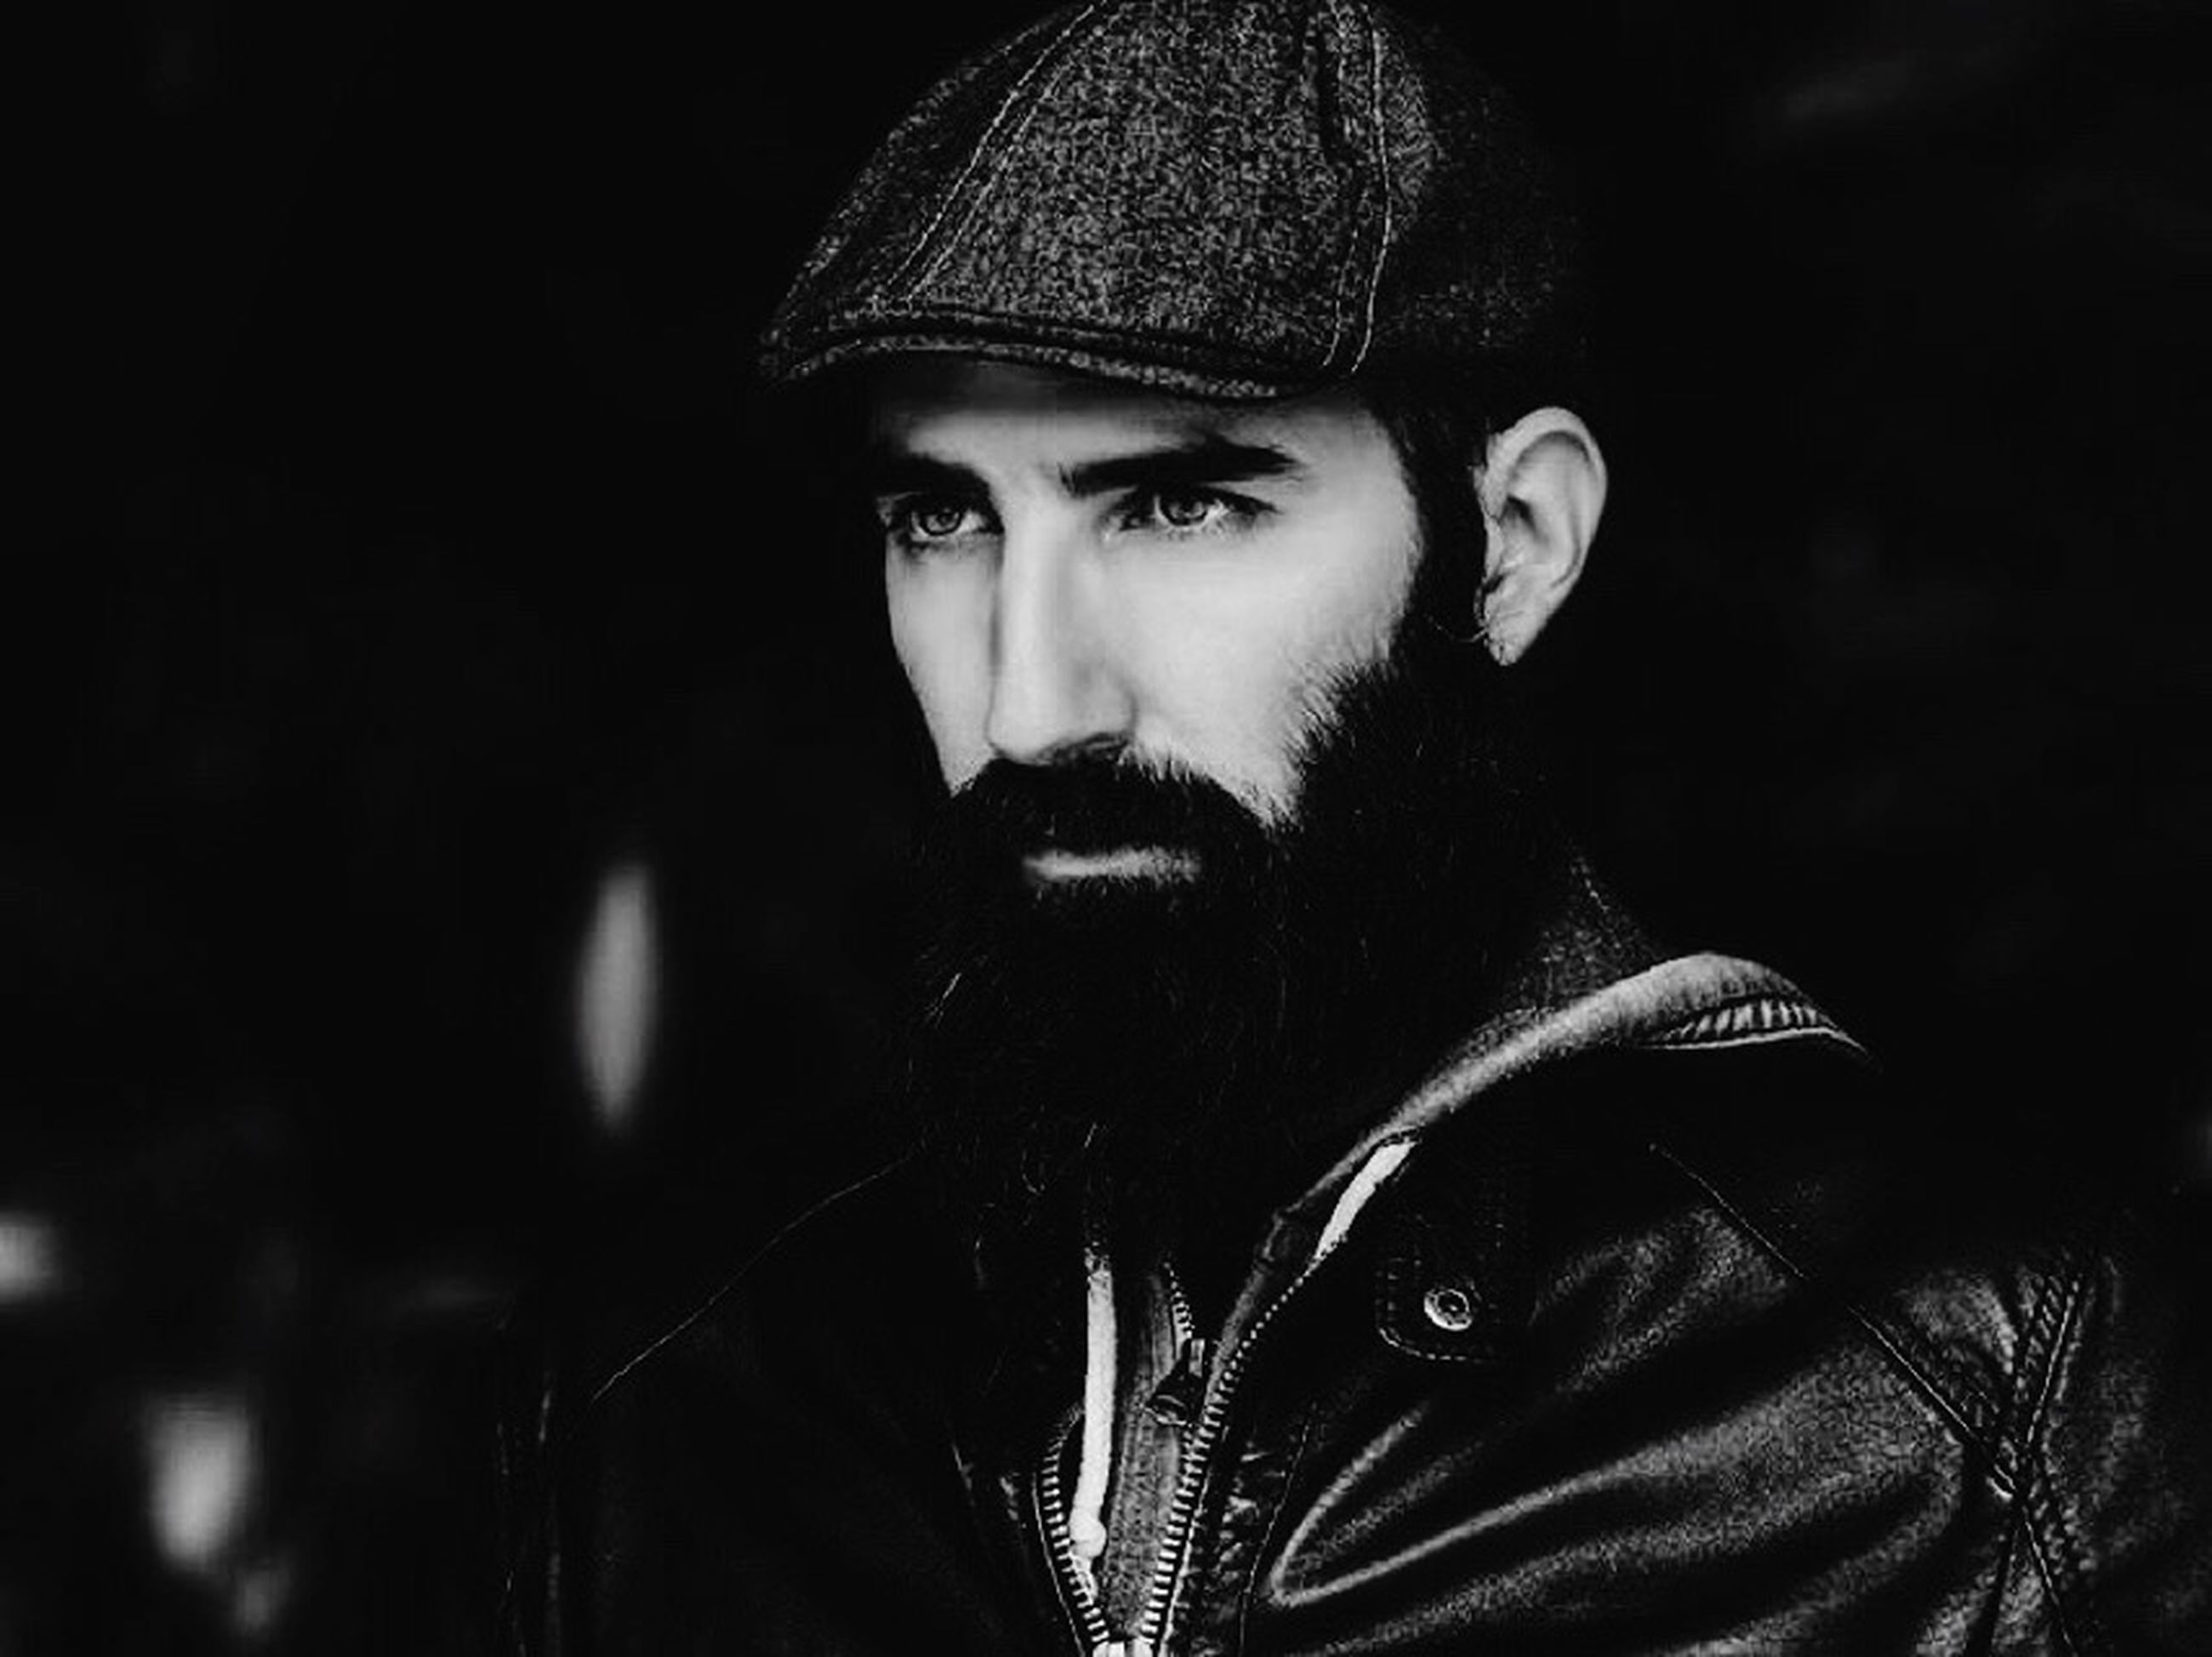 portrait, looking at camera, one person, one man only, only men, individuality, handsome, real people, adults only, headshot, beard, confidence, young adult, adult, night, black background, people, outdoors, warm clothing, close-up